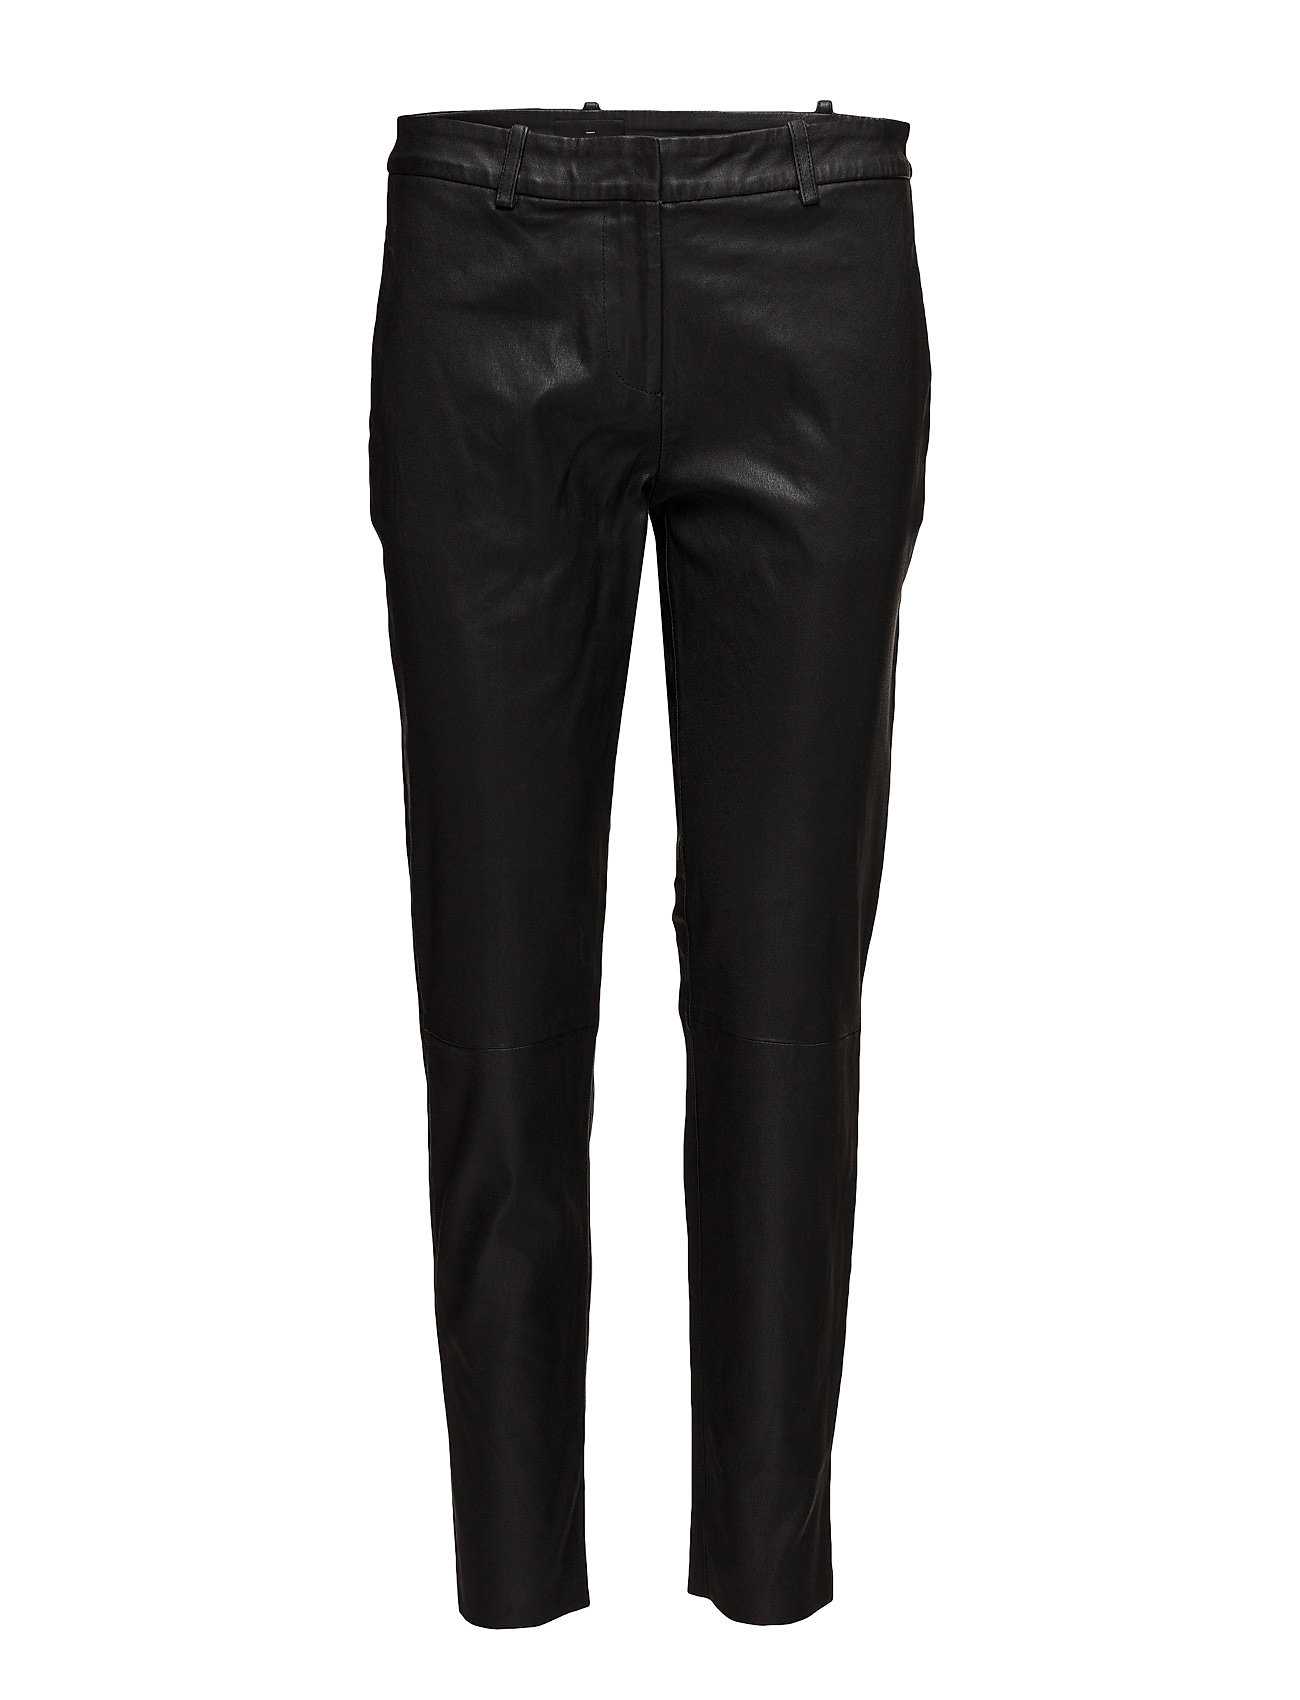 Kylie 634 Crop, Stretch Leather, Pants thumbnail